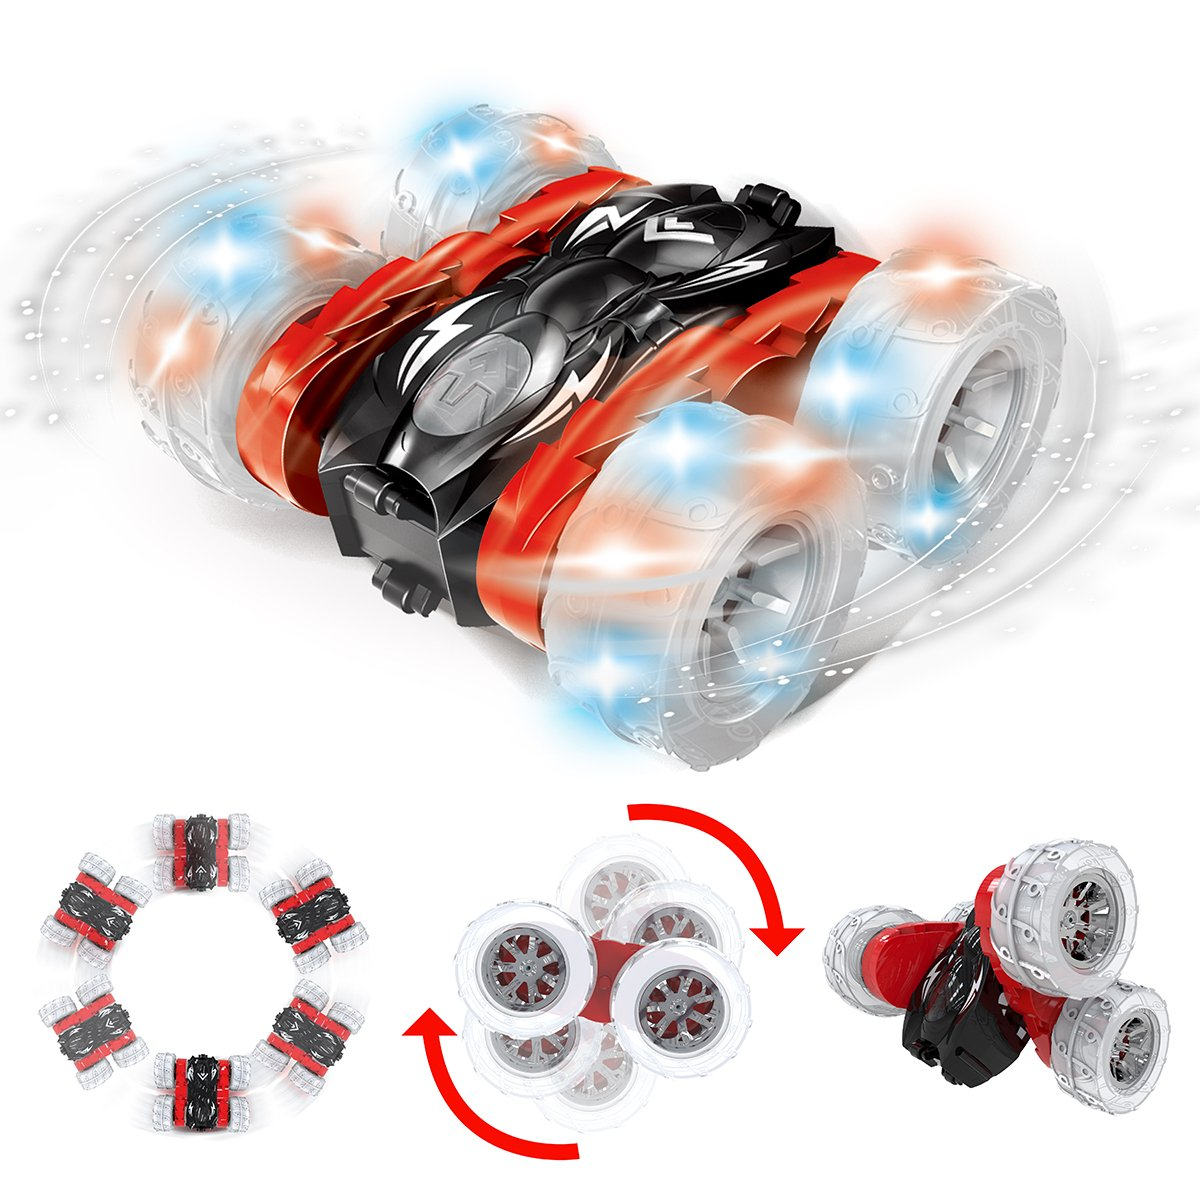 Christmas Kids Gifts 360 Degrees Flipping Double-Side Driving Red Remokids Rc Car Stunt Remote Control Car Toys for Boys Girls Kids Adults 2.4GHz Off-road Electric Rc Car with LED Lights Wheel